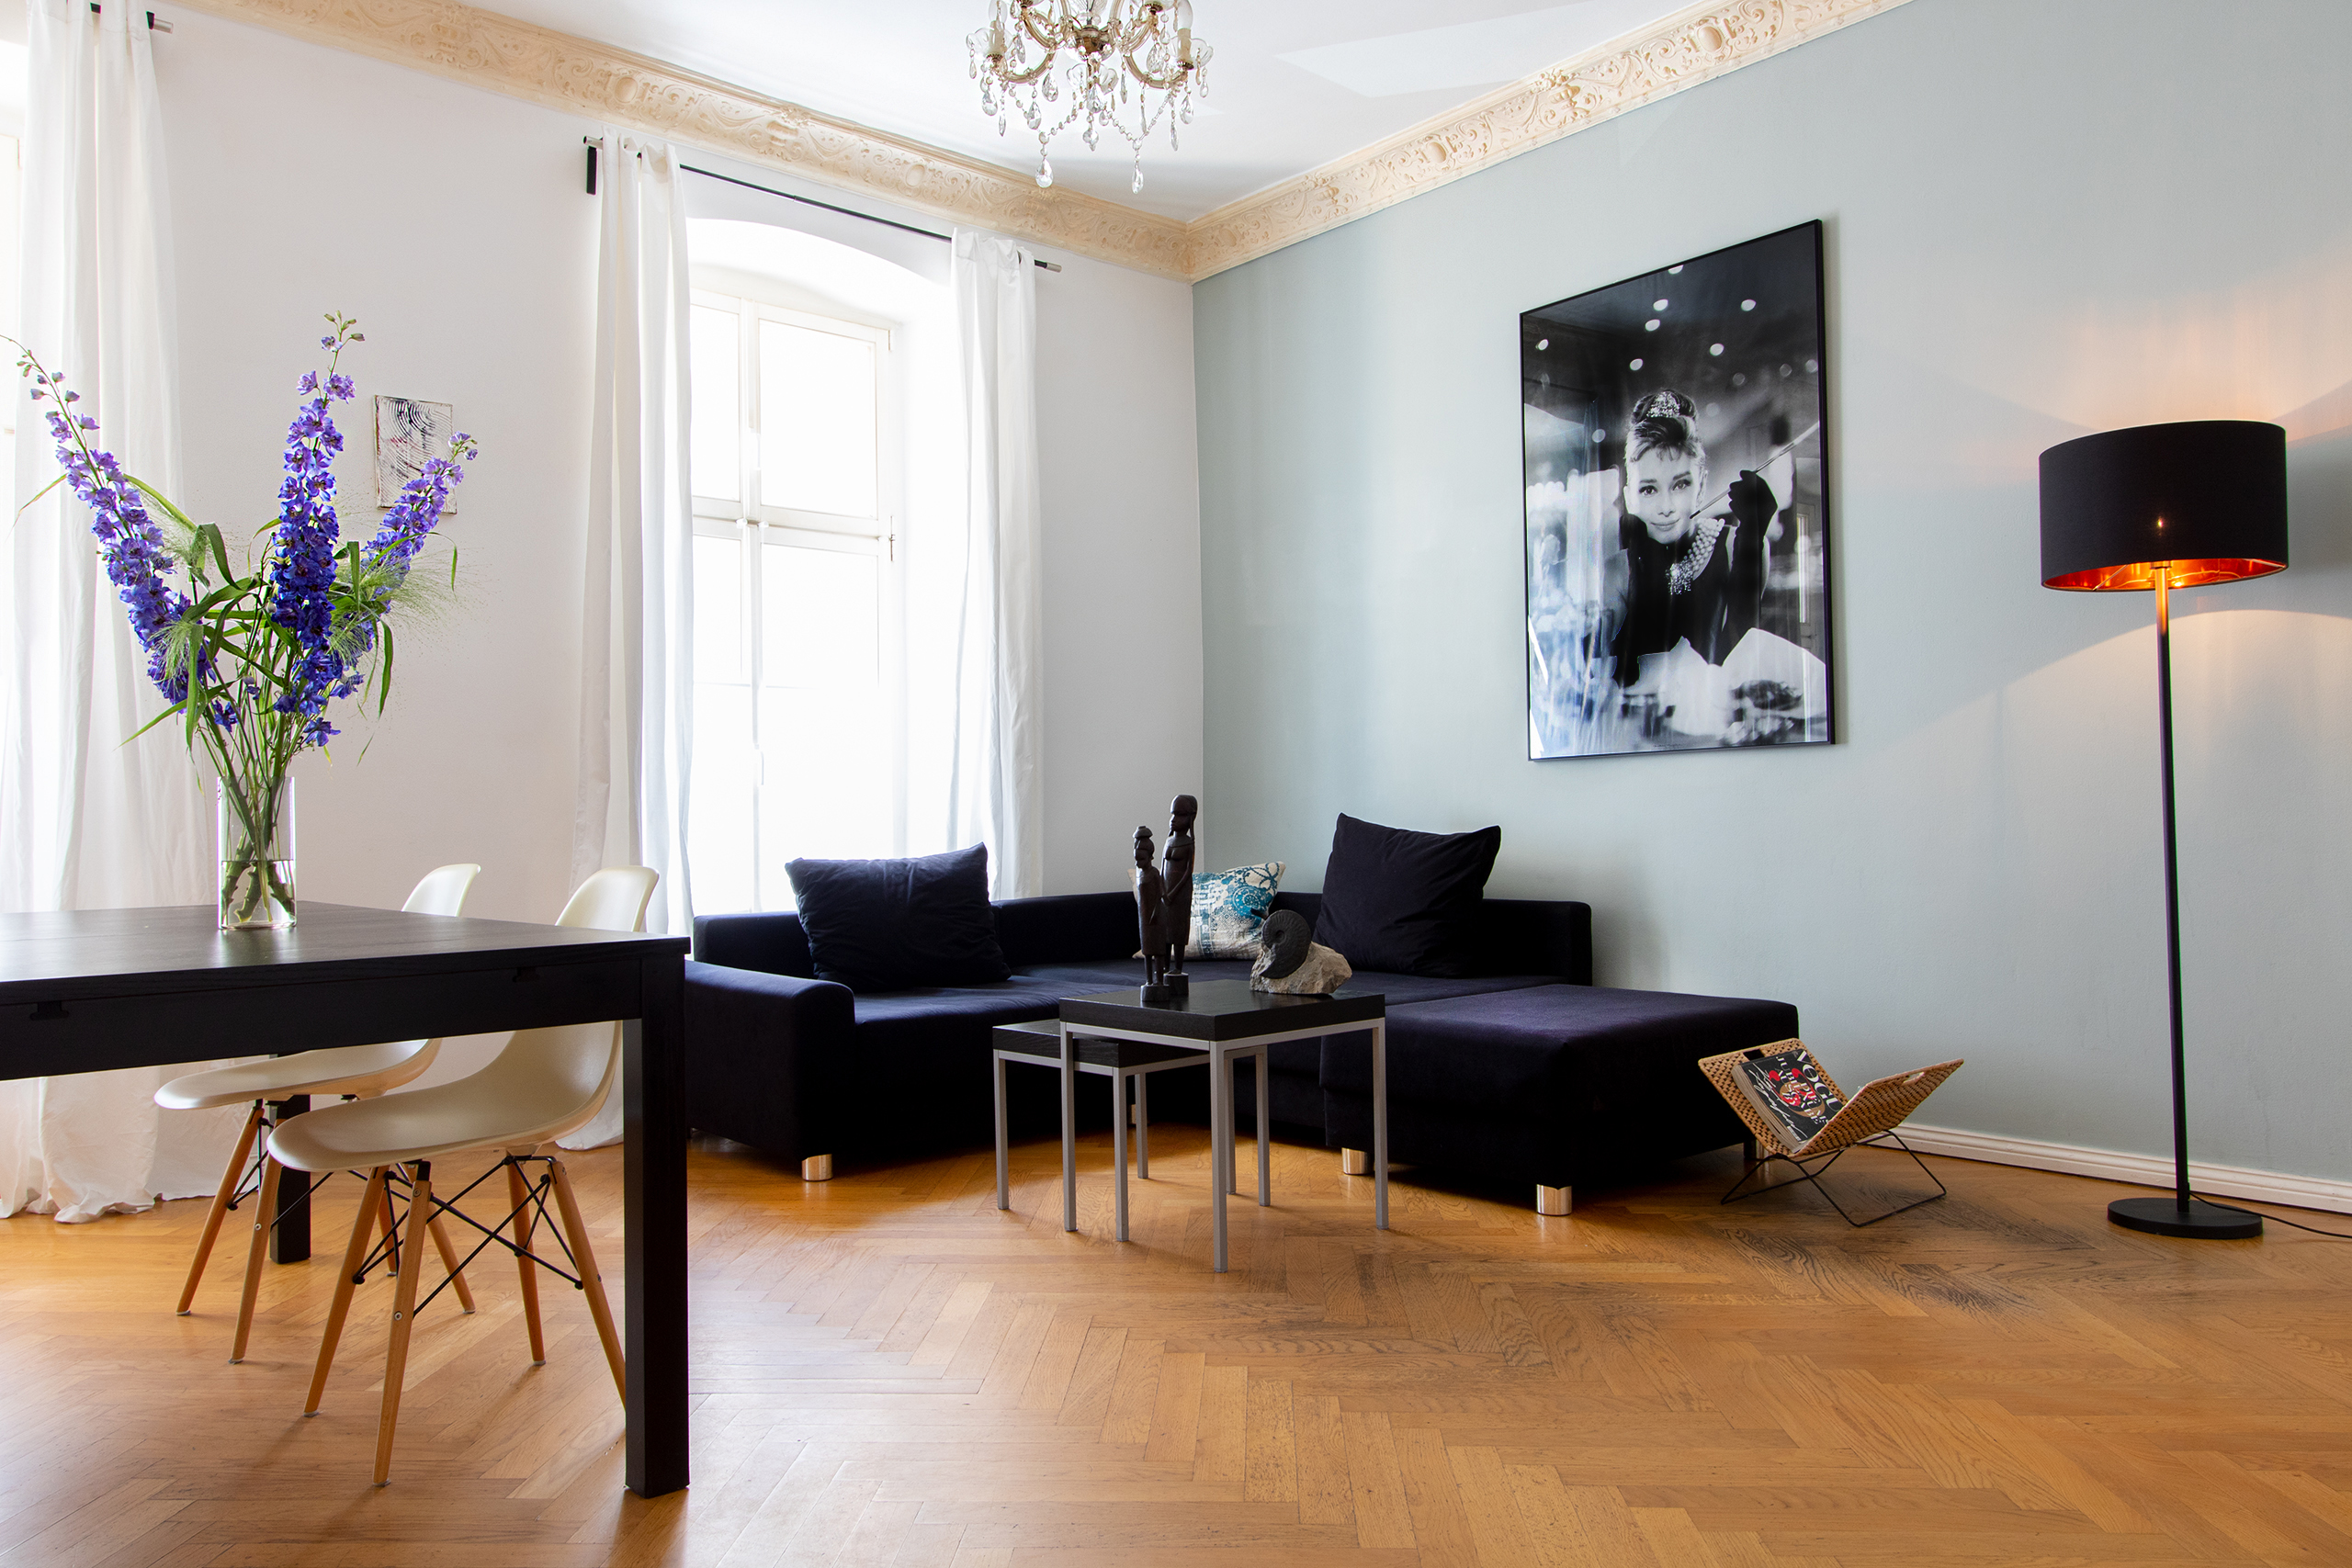 Furnished apartments in Berlin, Germany   Urban Apartments